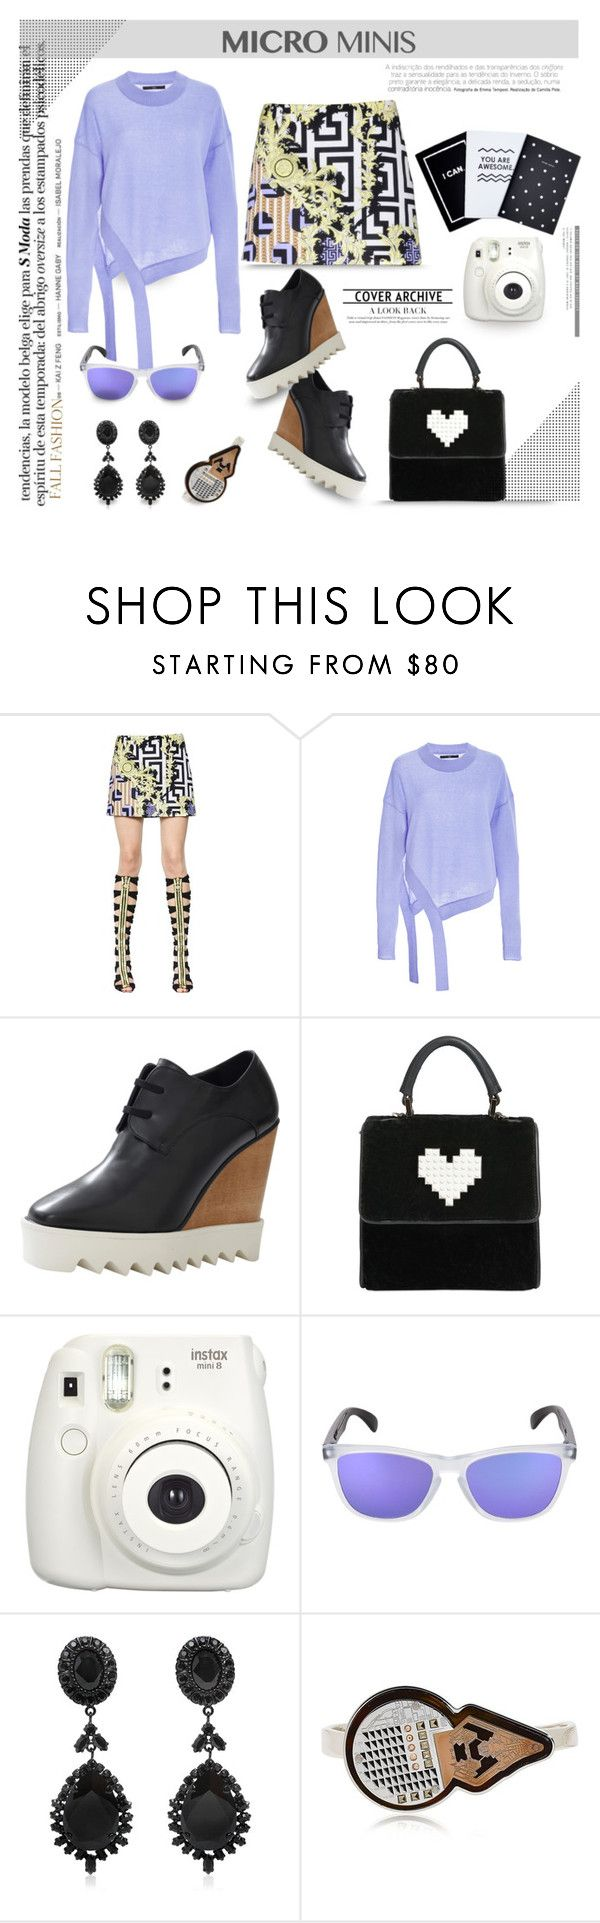 New Trend: Micro Mini Skirts... by unamiradaatuarmario on Polyvore featuring mode, TIBI, Versace, STELLA McCARTNEY, Les Petits Joueurs, Givenchy, LedaOtto, Oakley and microminis